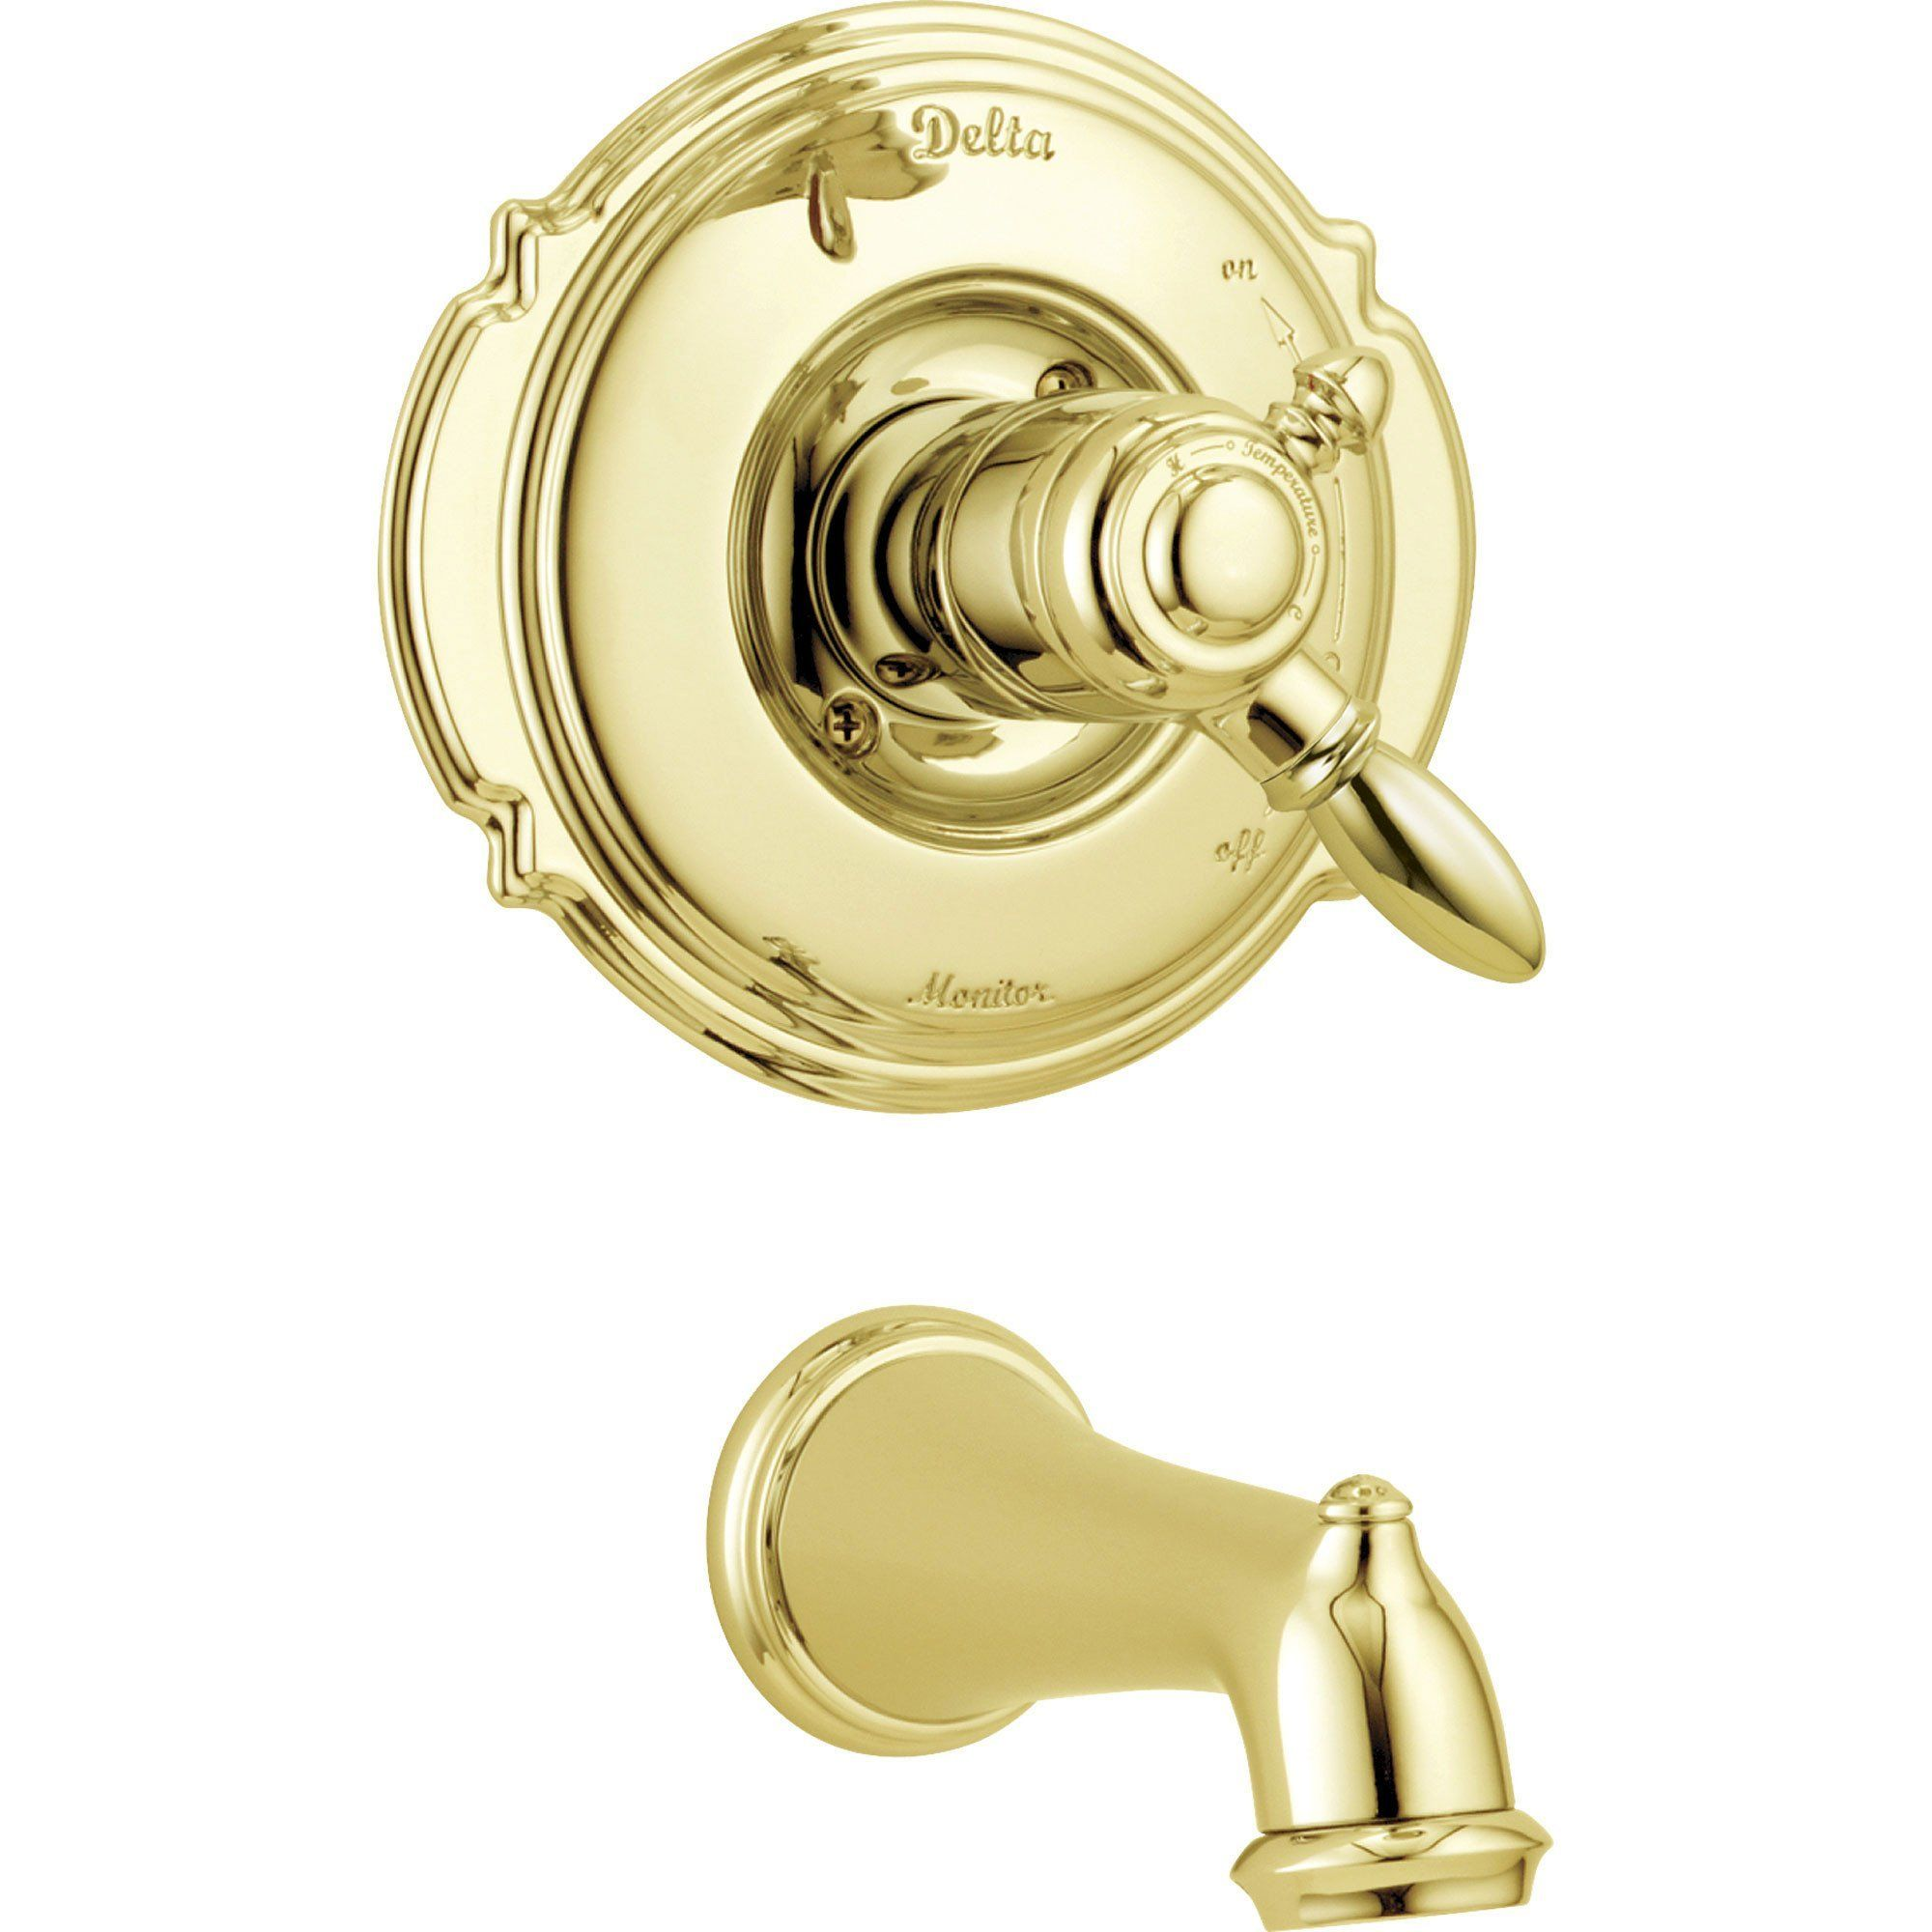 Delta Victorian Polished Brass Temp Volume Control Tub Filler With Valve D219v In 2021 Polished Brass Tub Spout Tub Filler Delta polished brass bathroom faucets